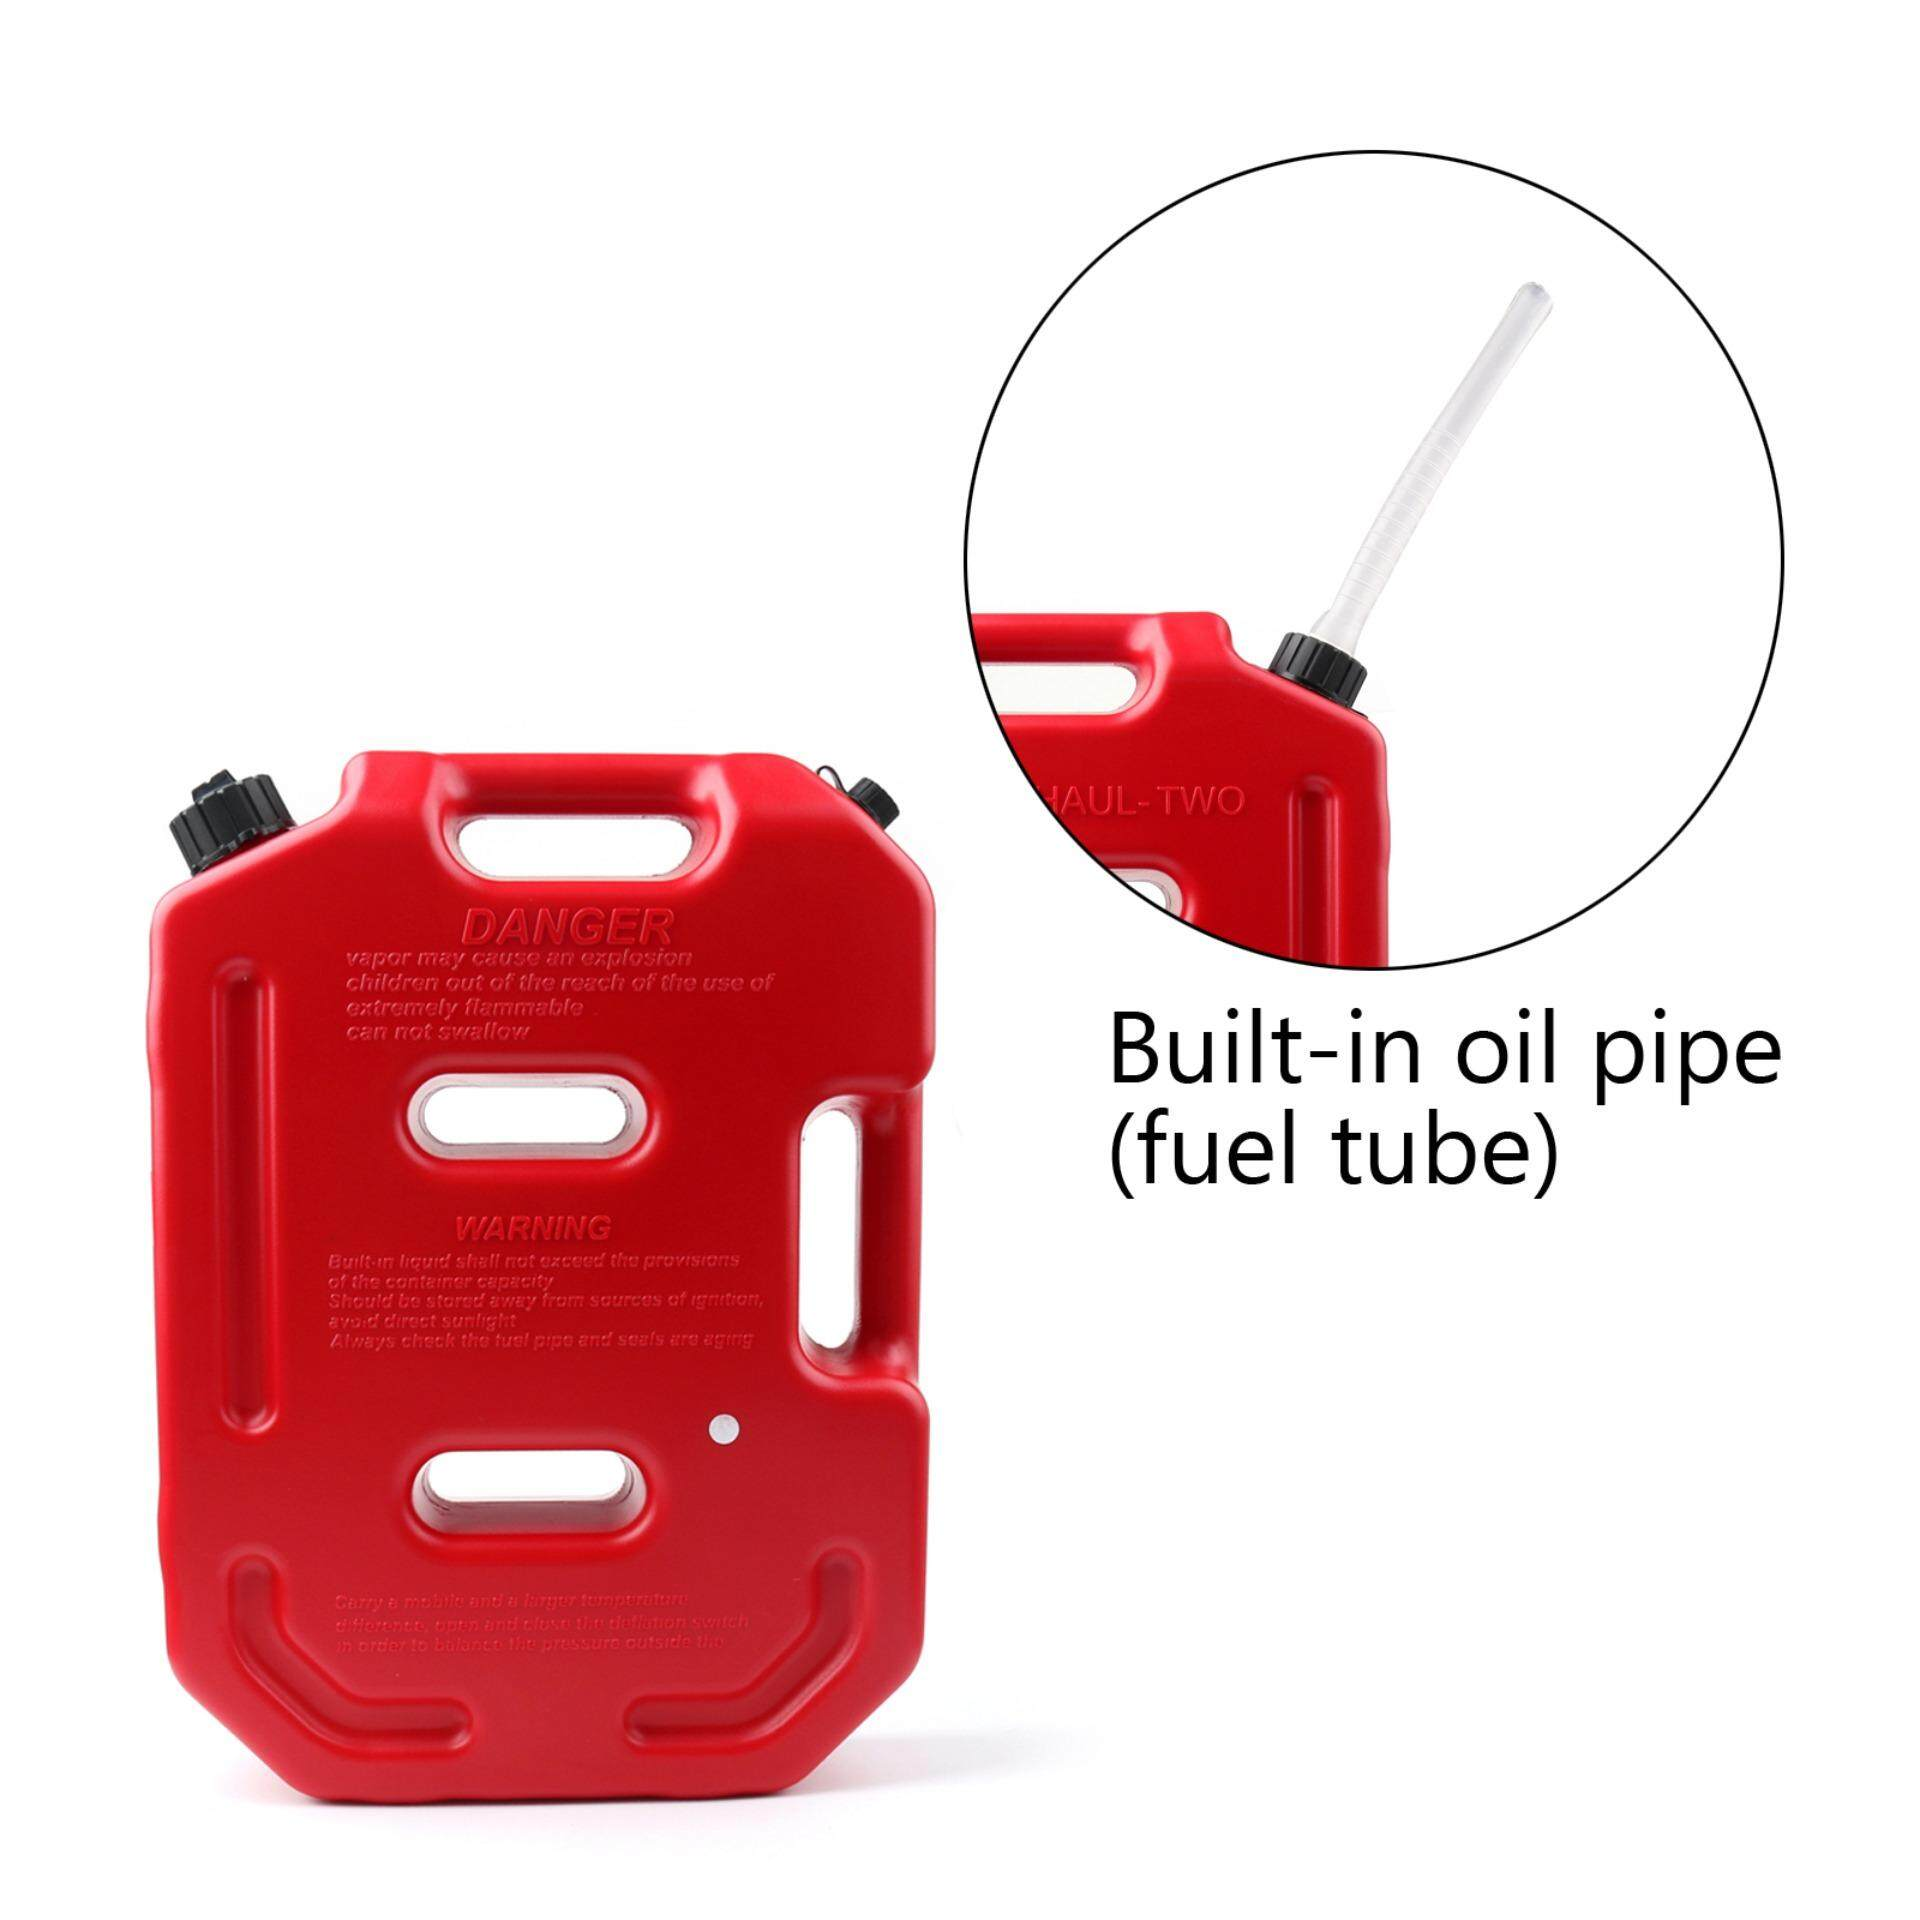 Motorcycle Gas Tank For Sale Fuel Online Brands Lid Pad Prices Reviews In Philippines